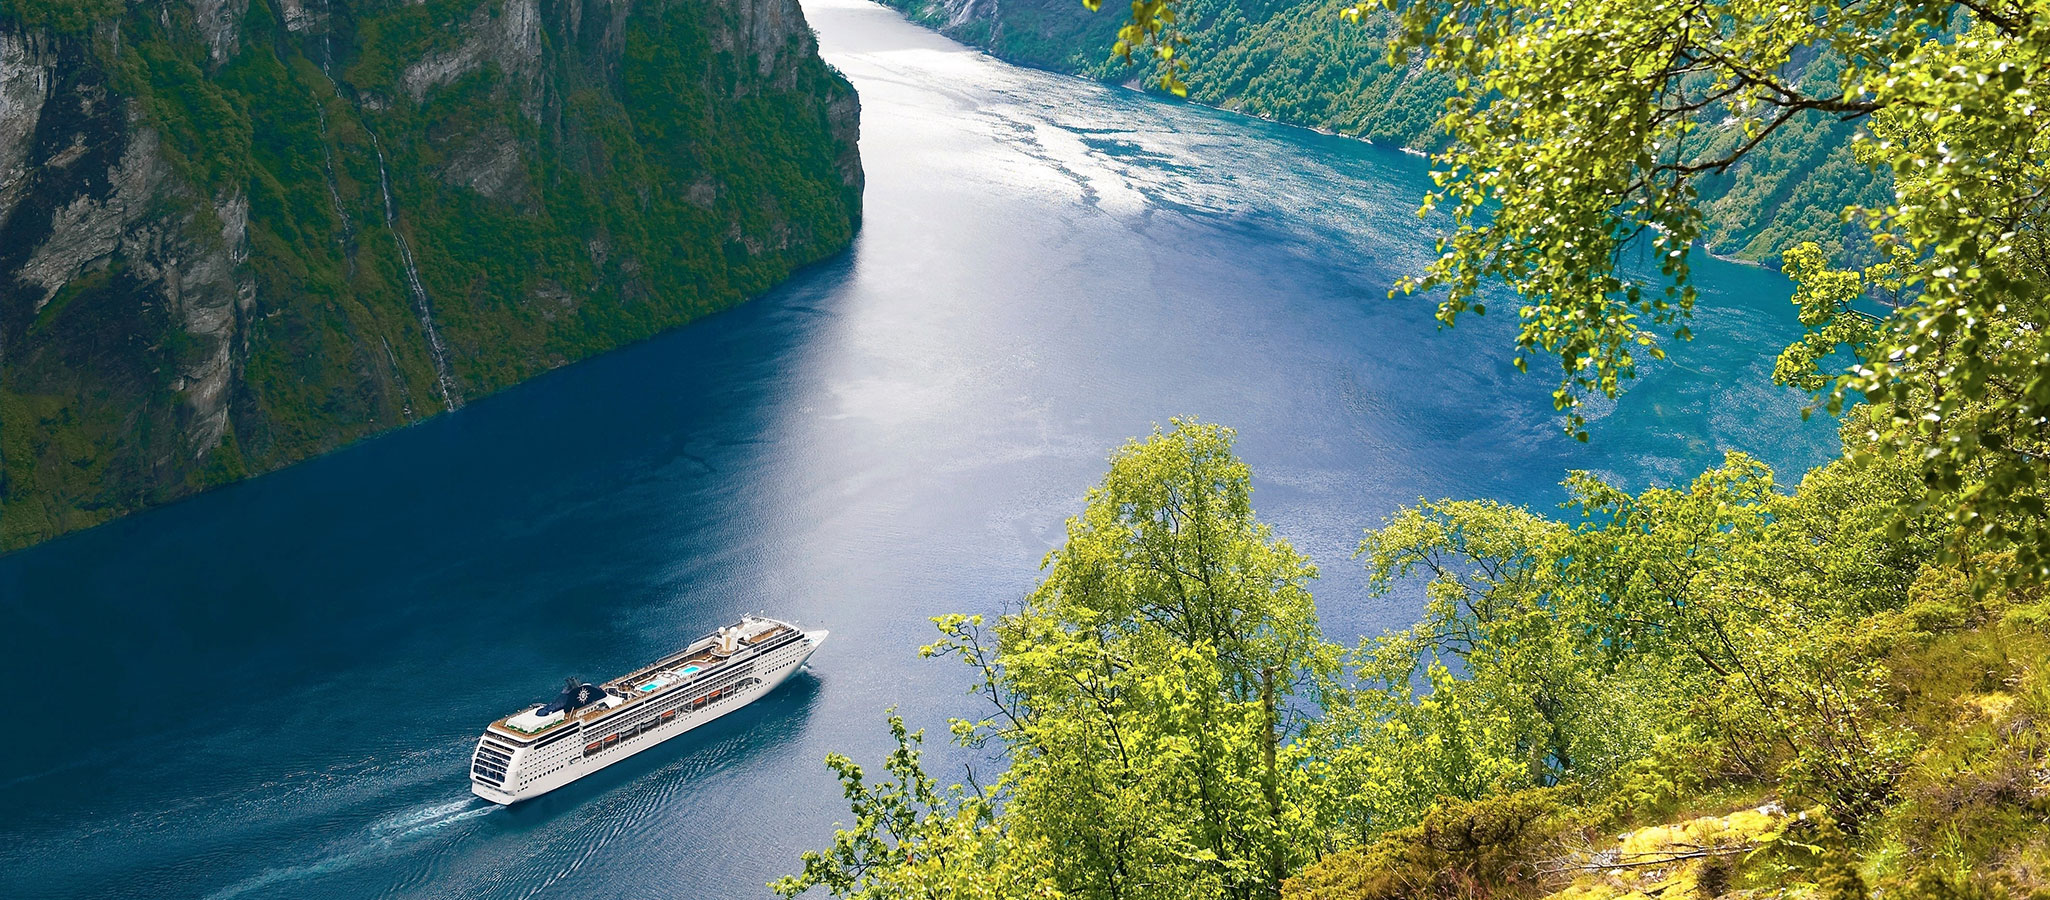 The cruise liners are available all year round in the Caribbean, Mediterranean and in northern Europe for maritime MICE events.